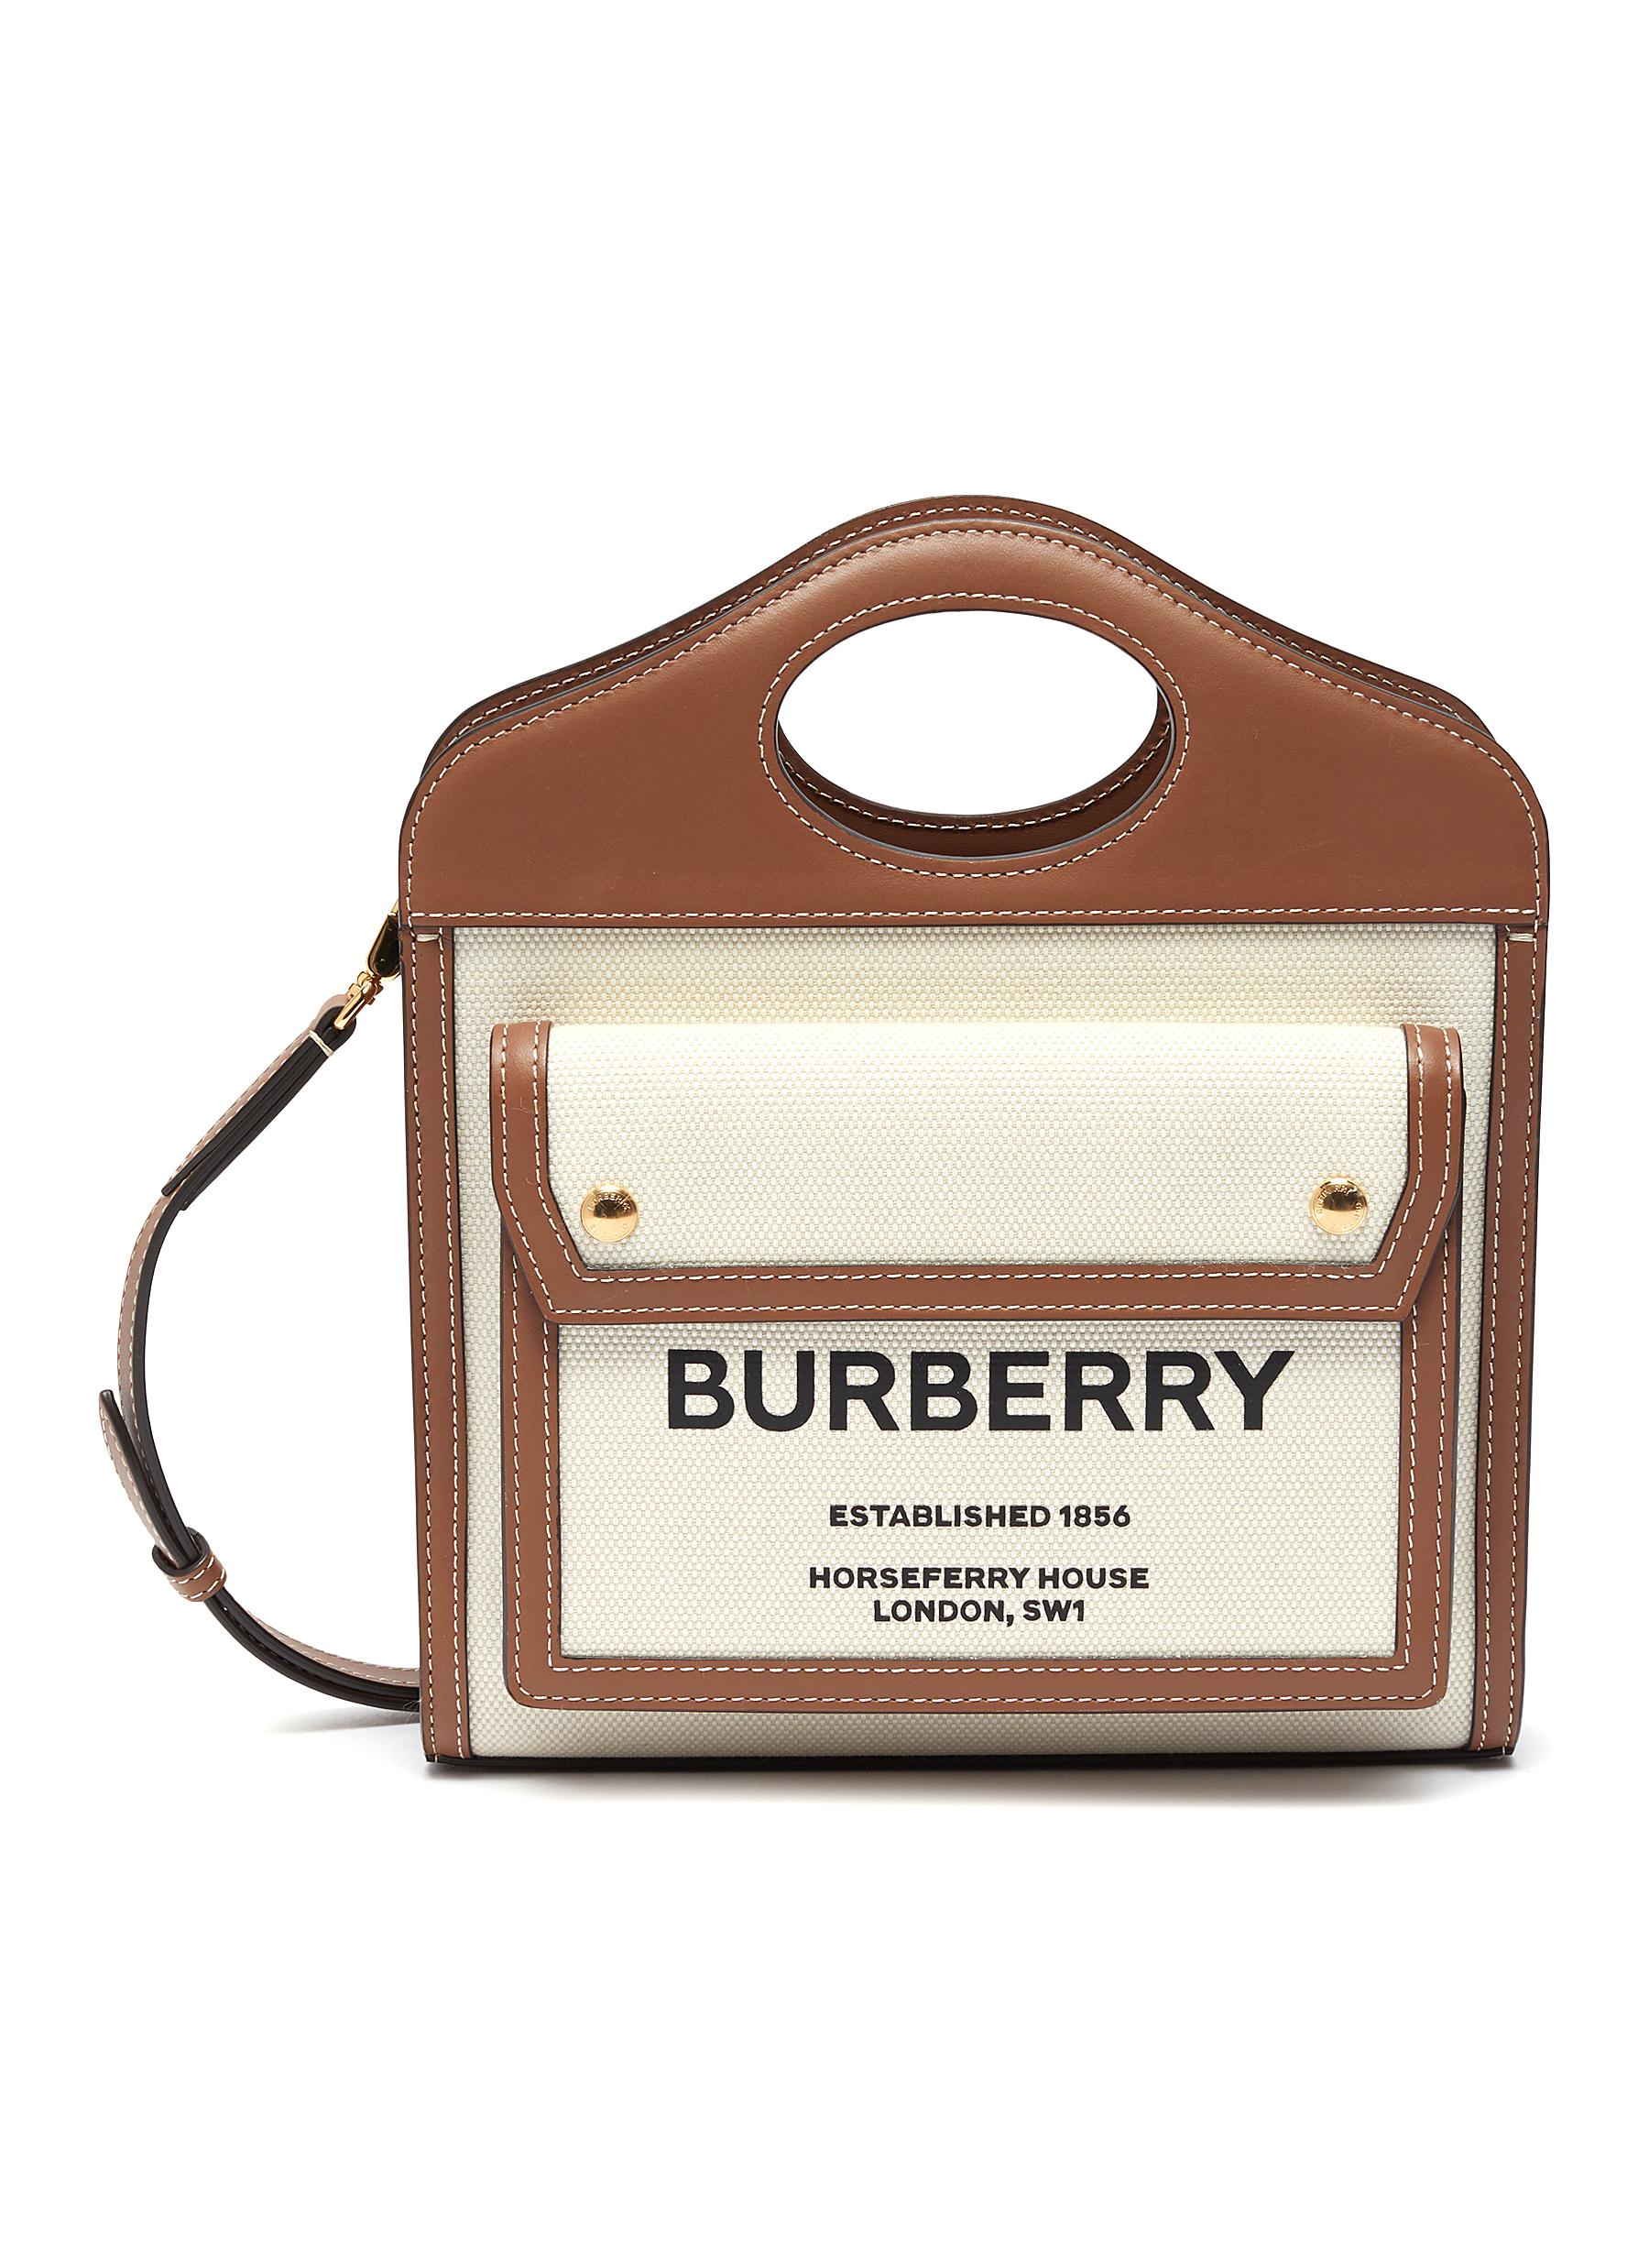 Burberry 'pocket' Logo Leather Canvas Mini Handle Bag In Neutral,brown